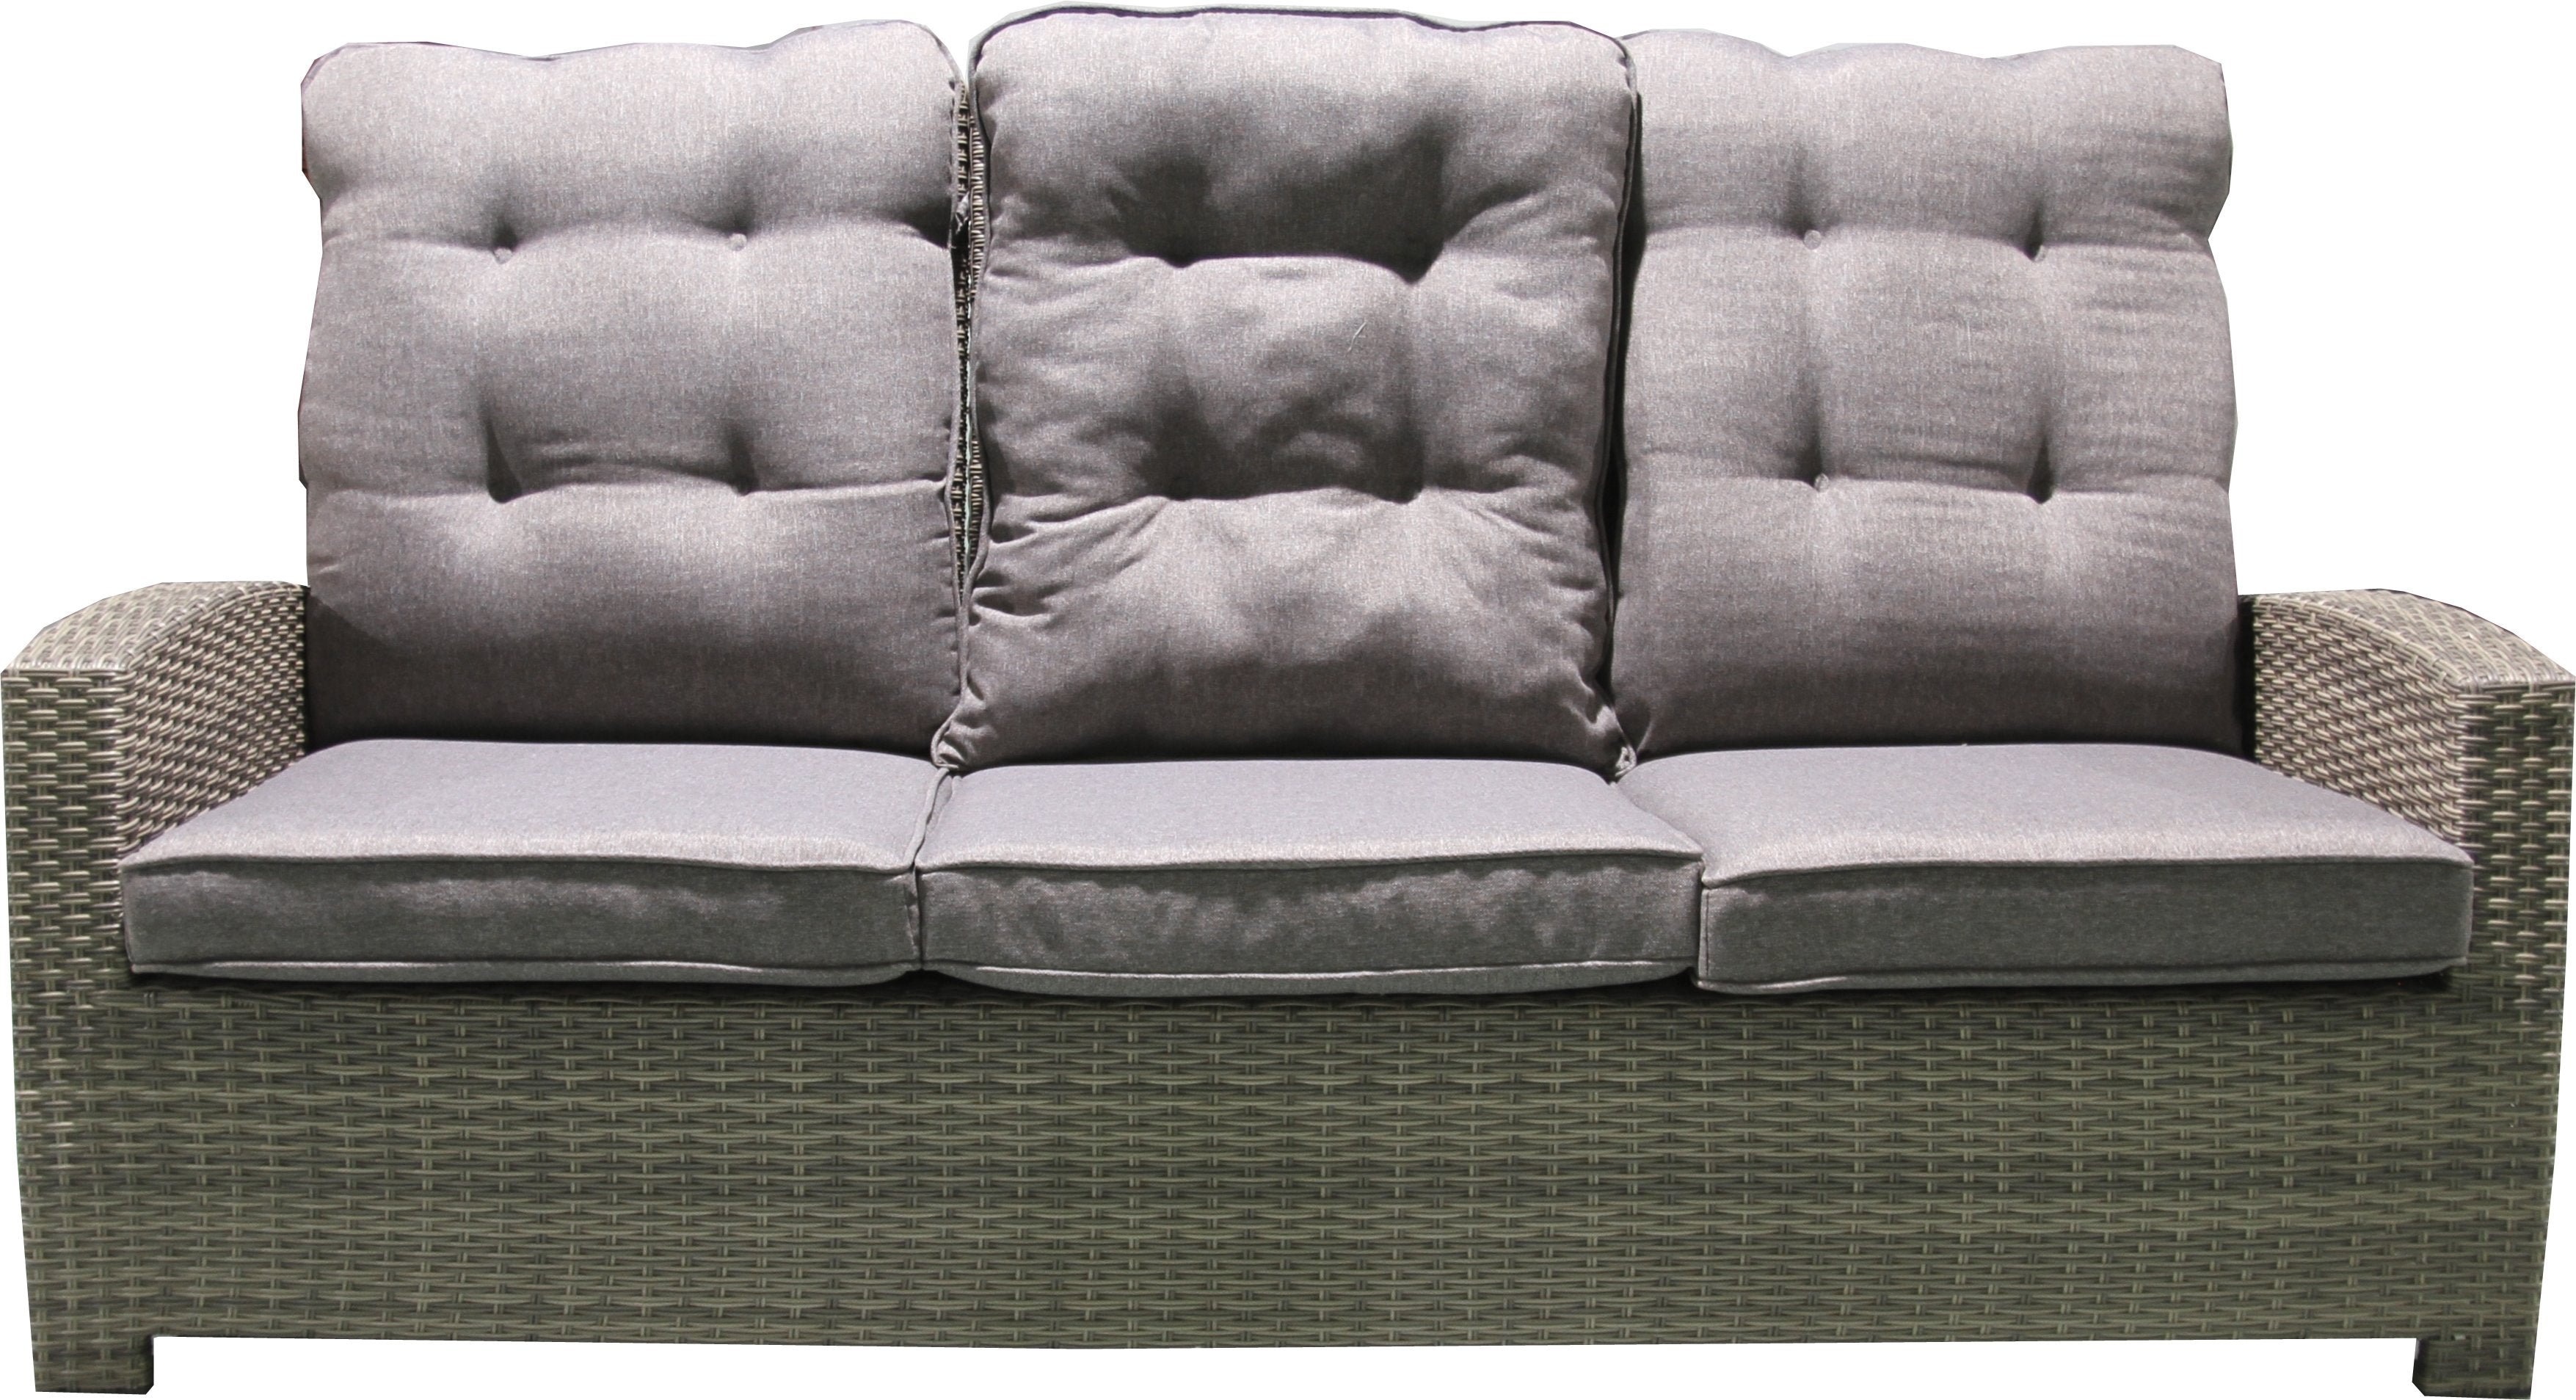 AGN 3 Seat Sofa with Ottomans